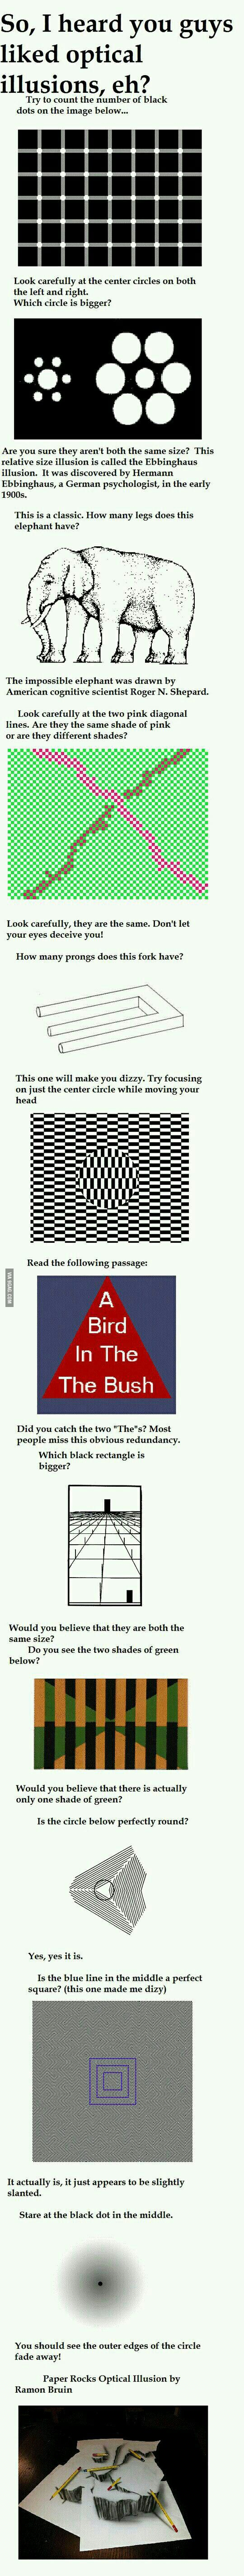 So You Like Optical Illusion?